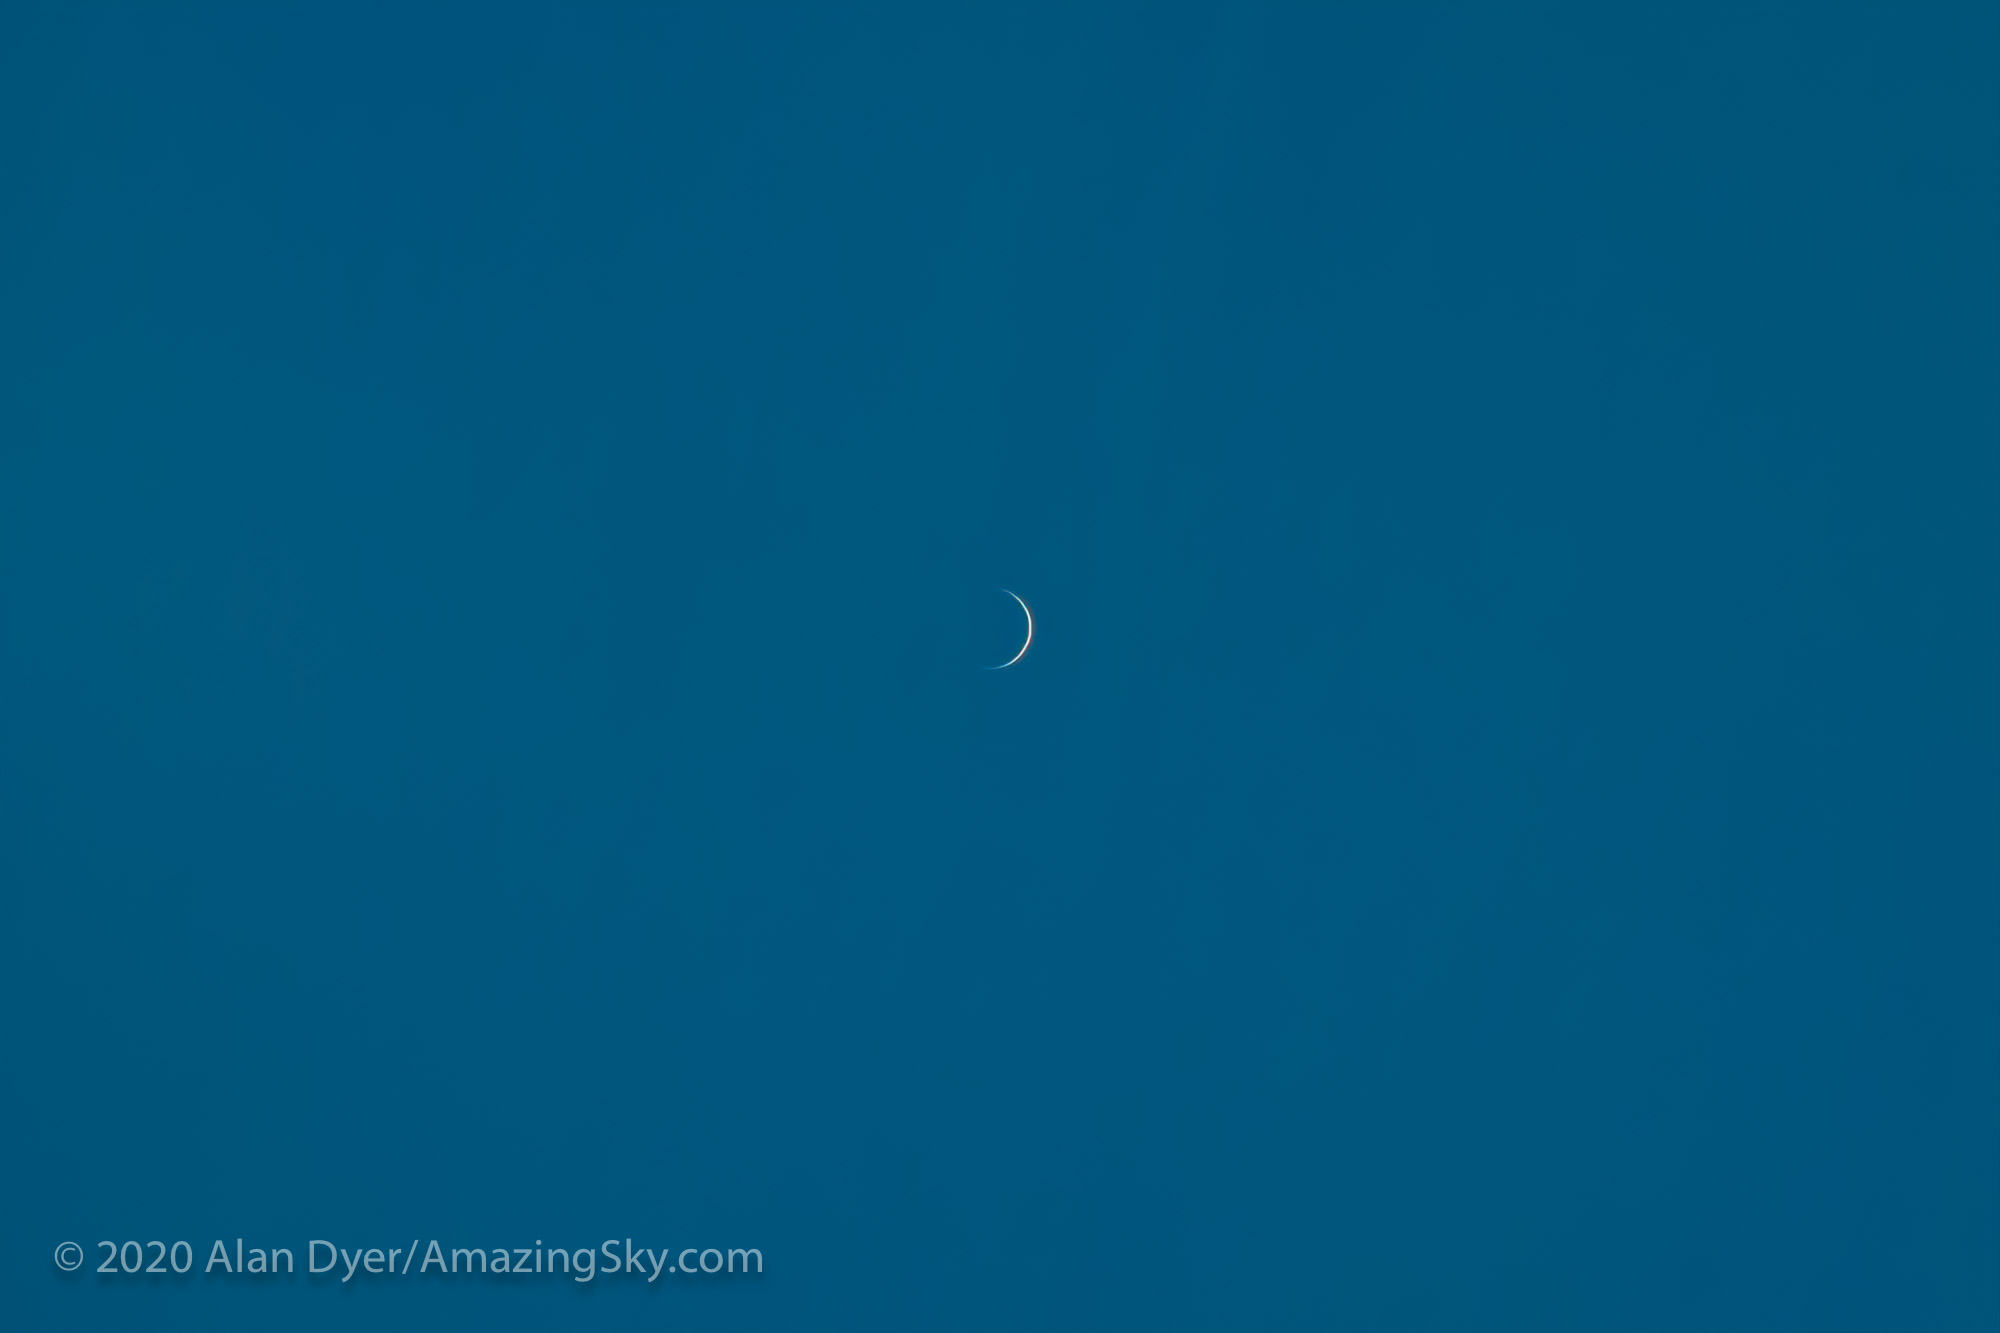 Venus Near Inferior Conjunction (May 29, 2020)